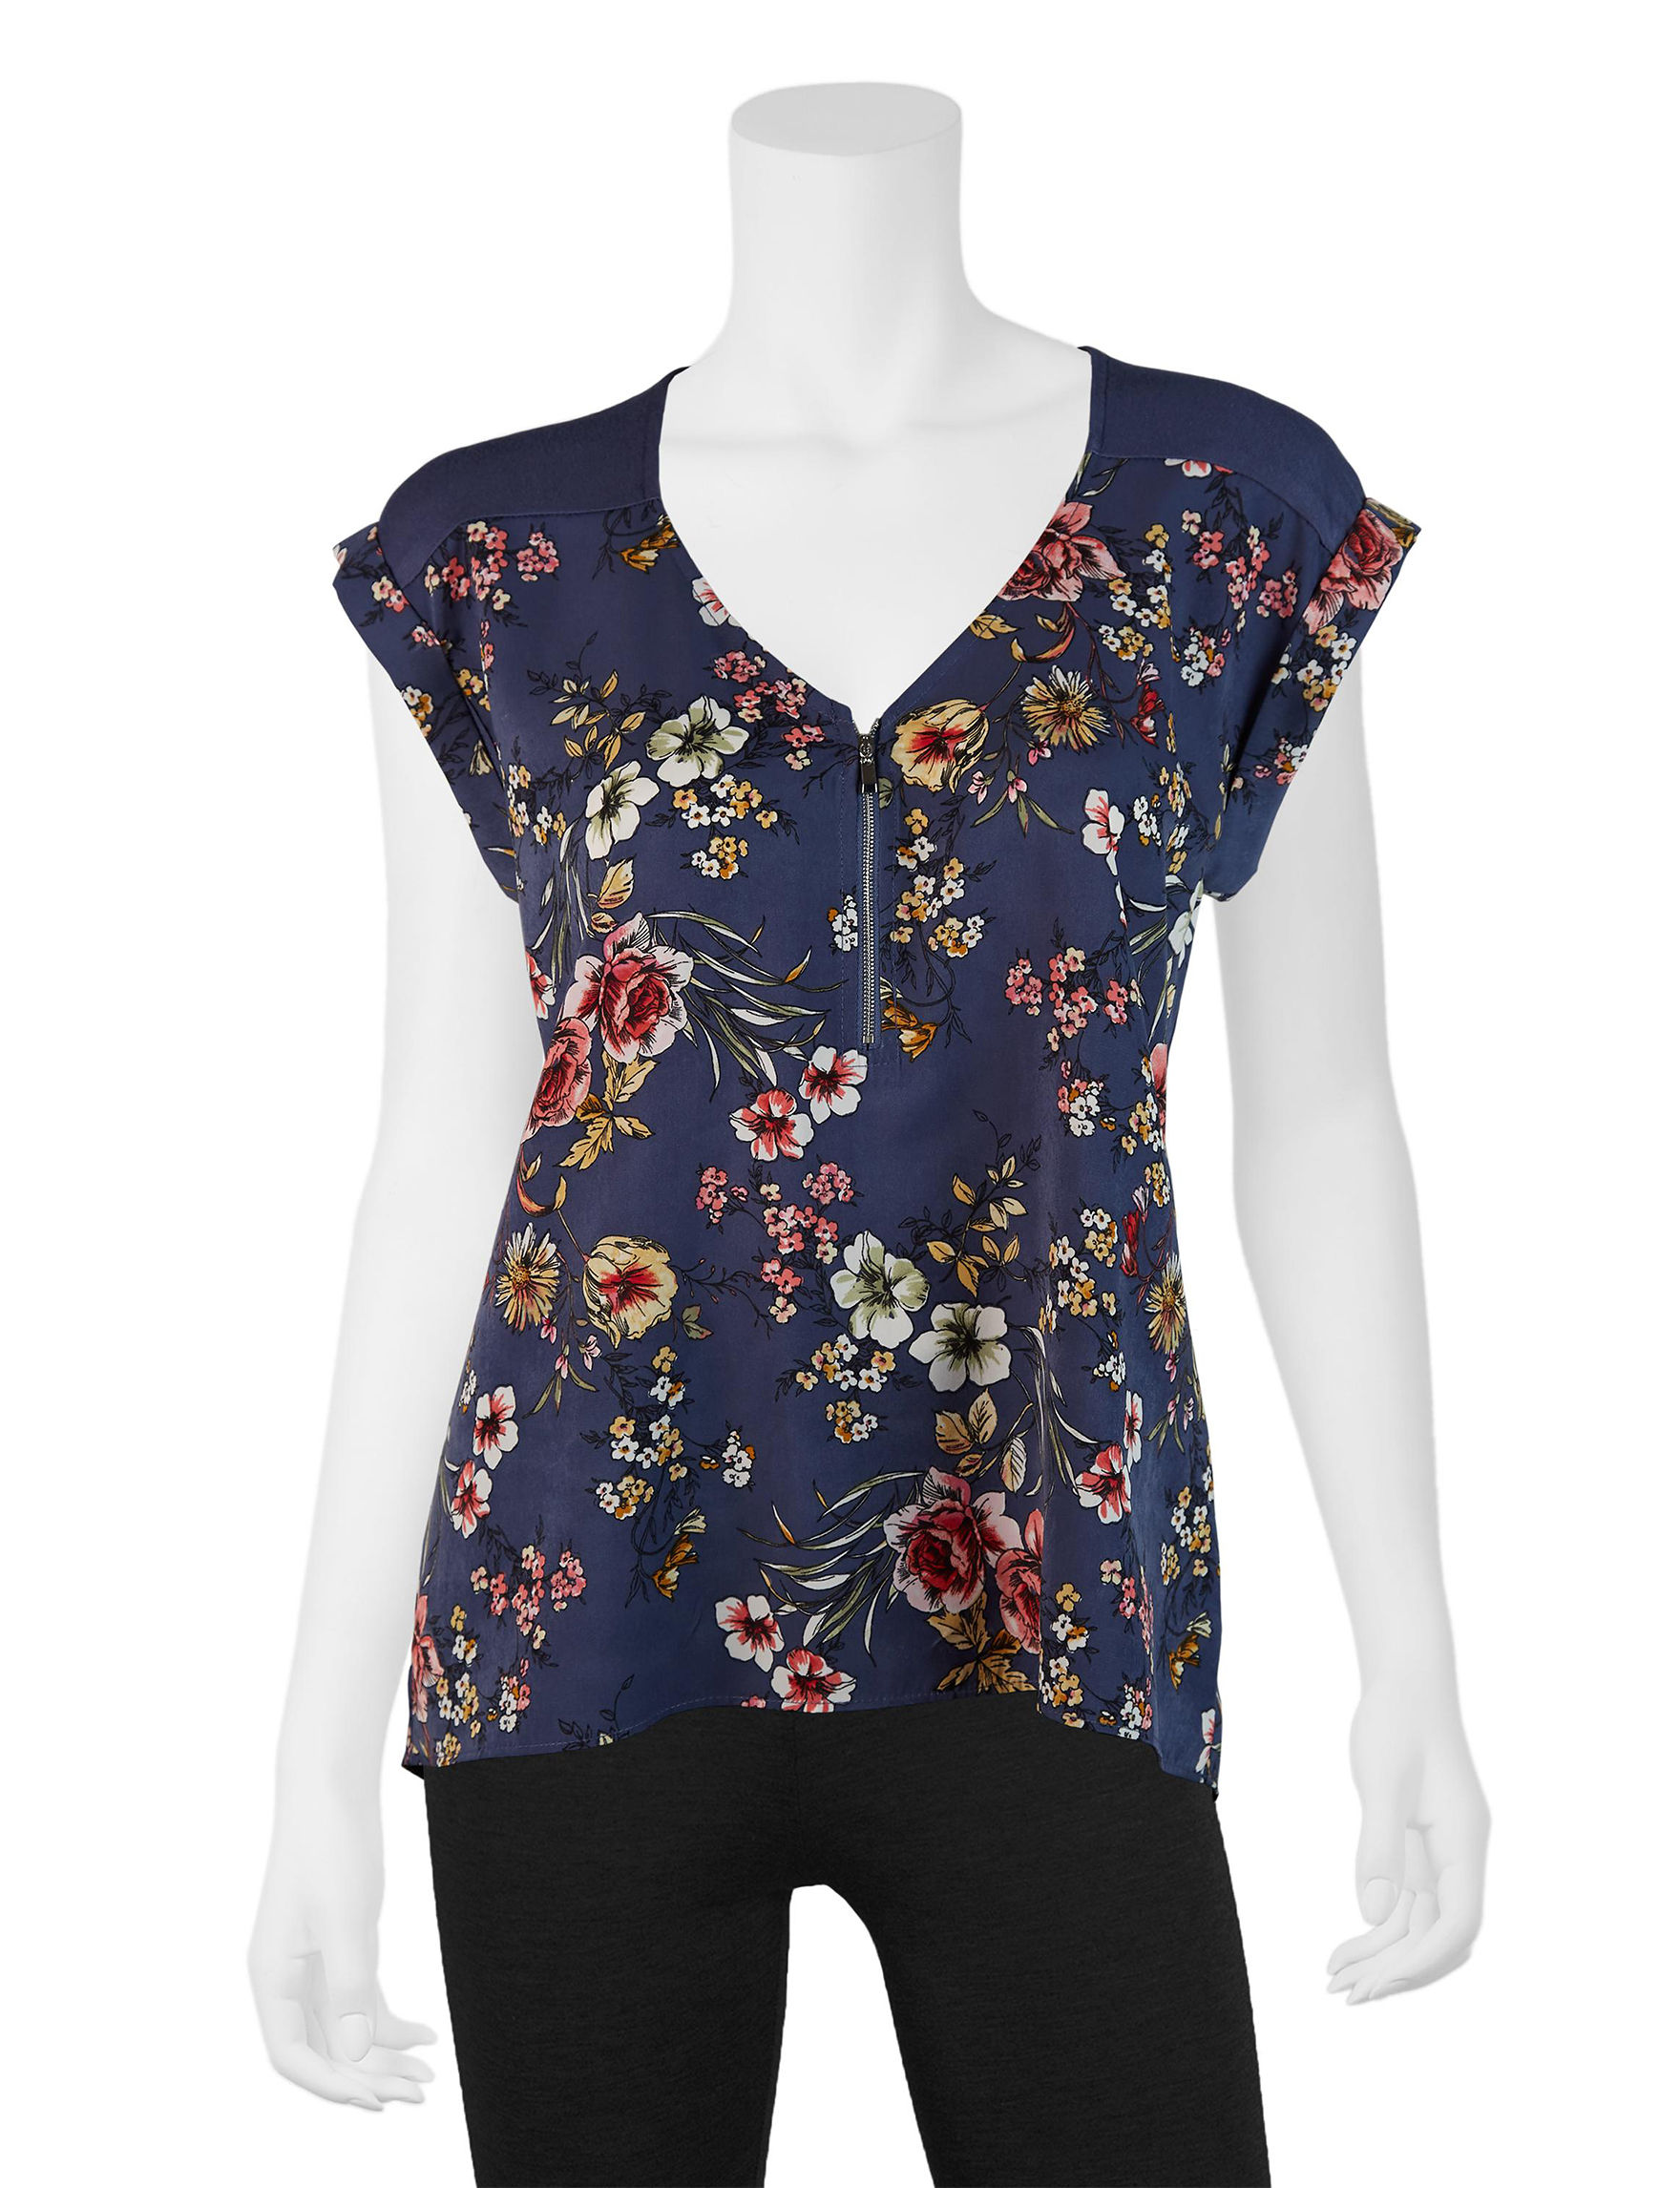 A. Byer Navy Floral Shirts & Blouses